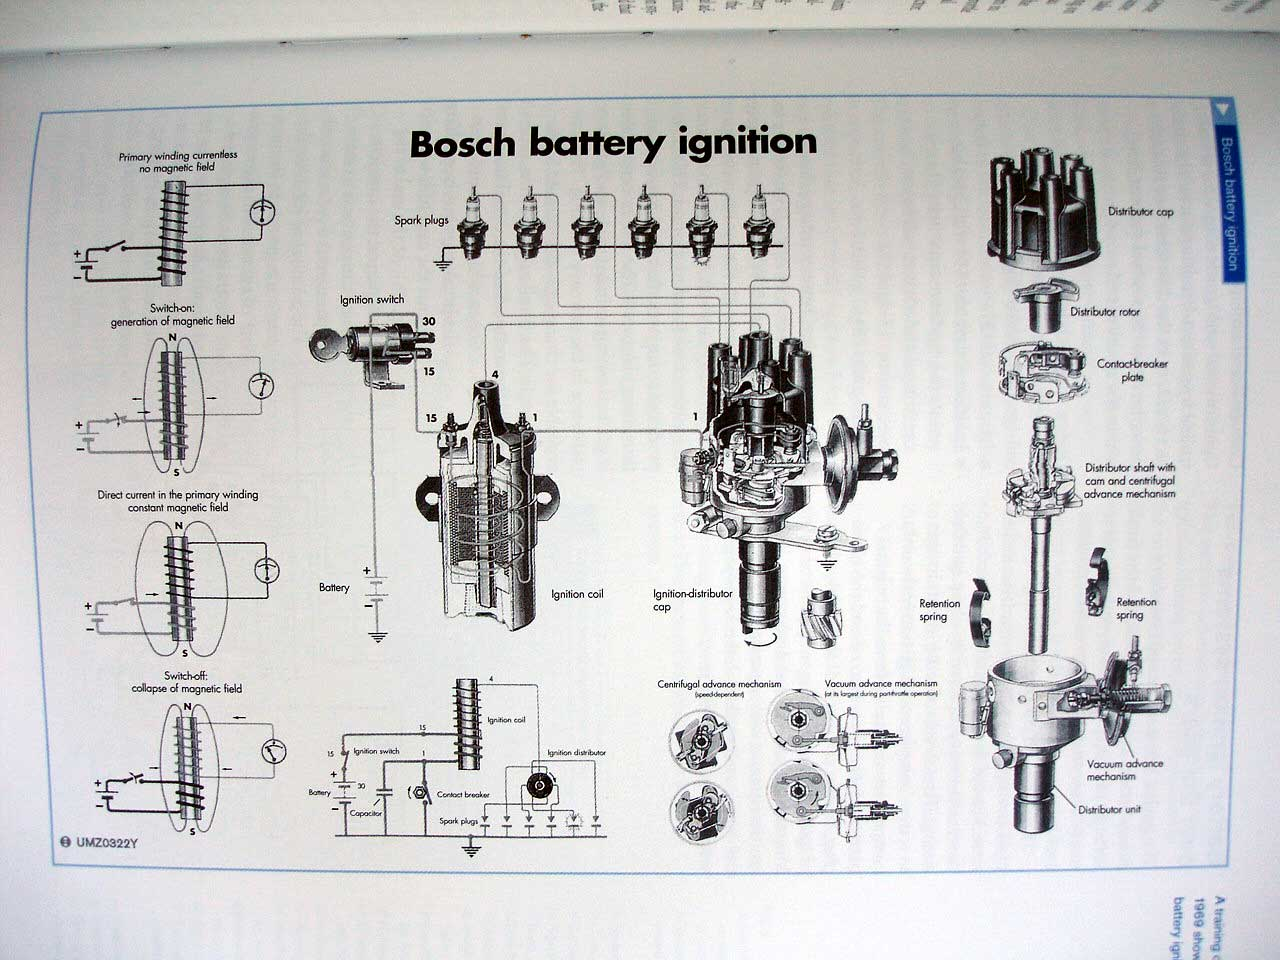 ih electronic ignition wiring diagram wiring libraryboch diagram understanding the ignition system boch diagram ih electronic ignition wiring